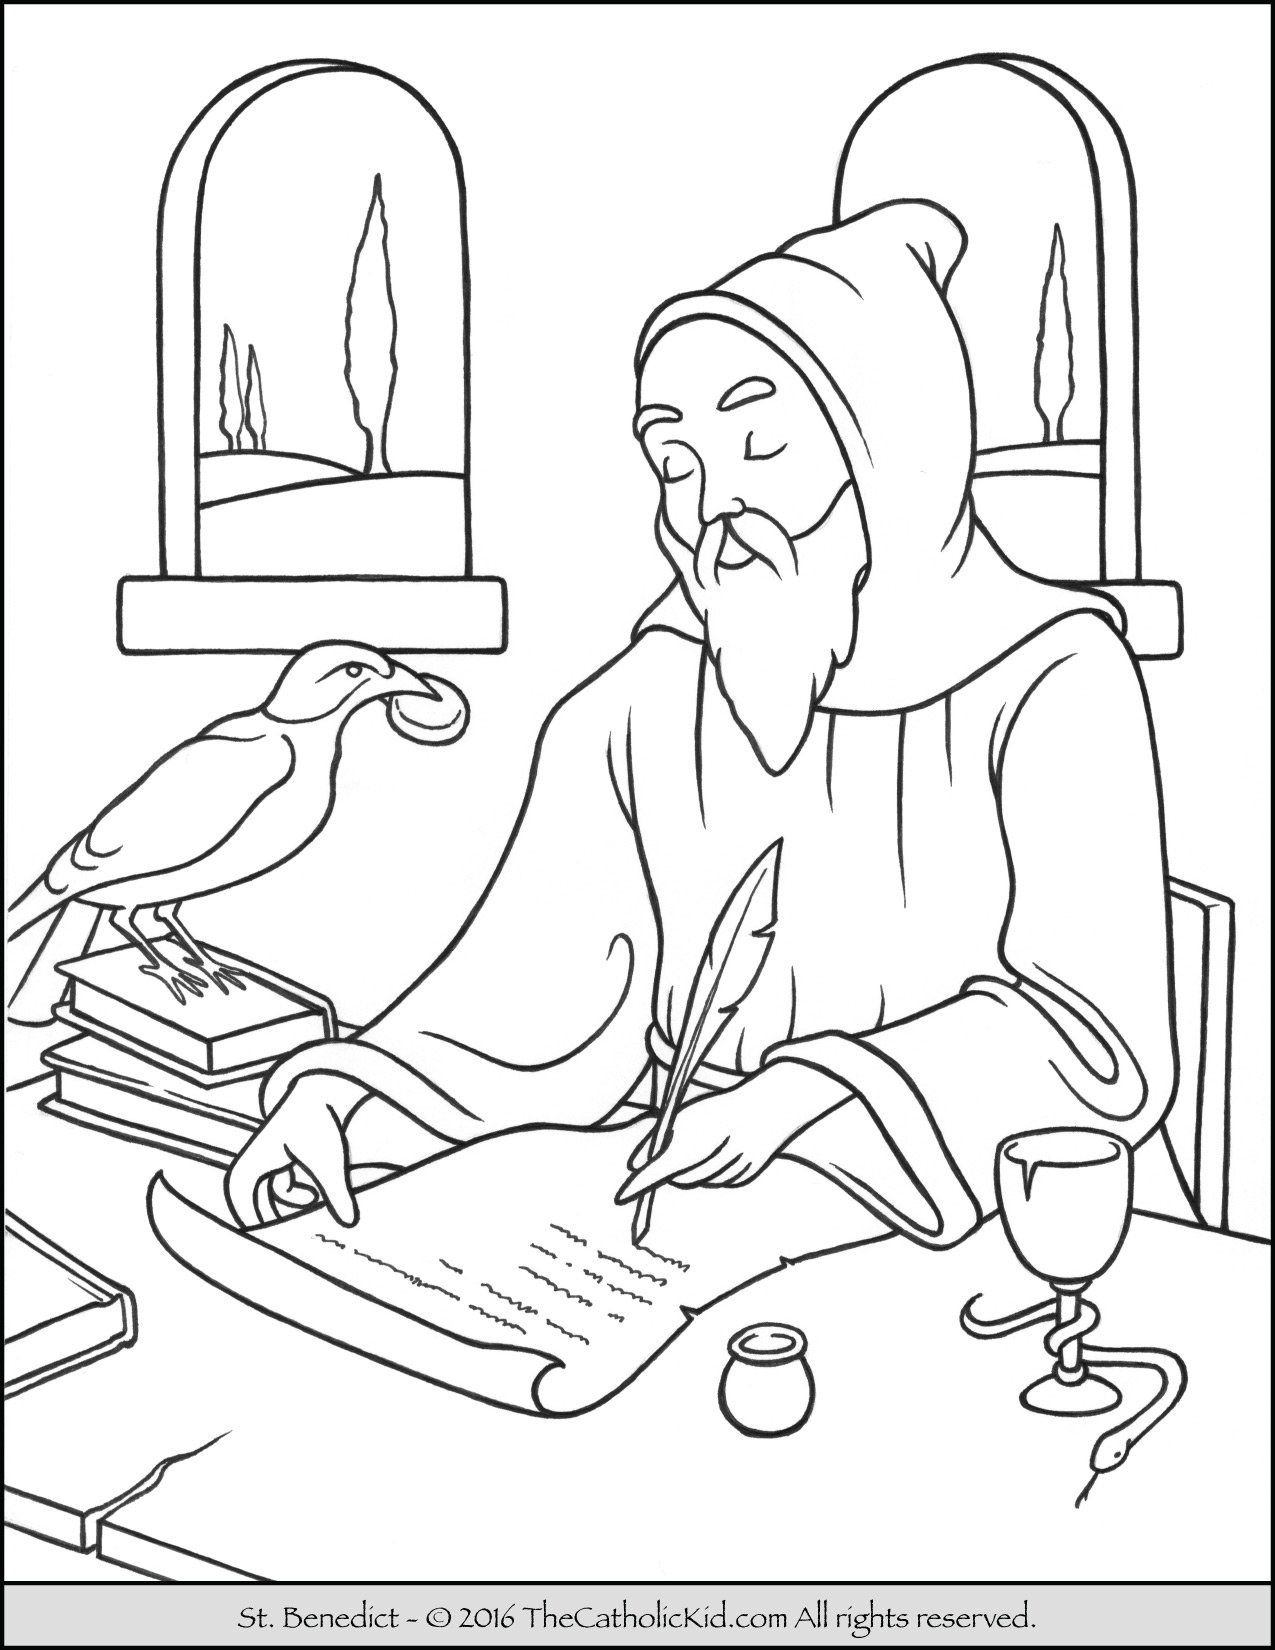 Saint Benedict Coloring Page - The Catholic Kid